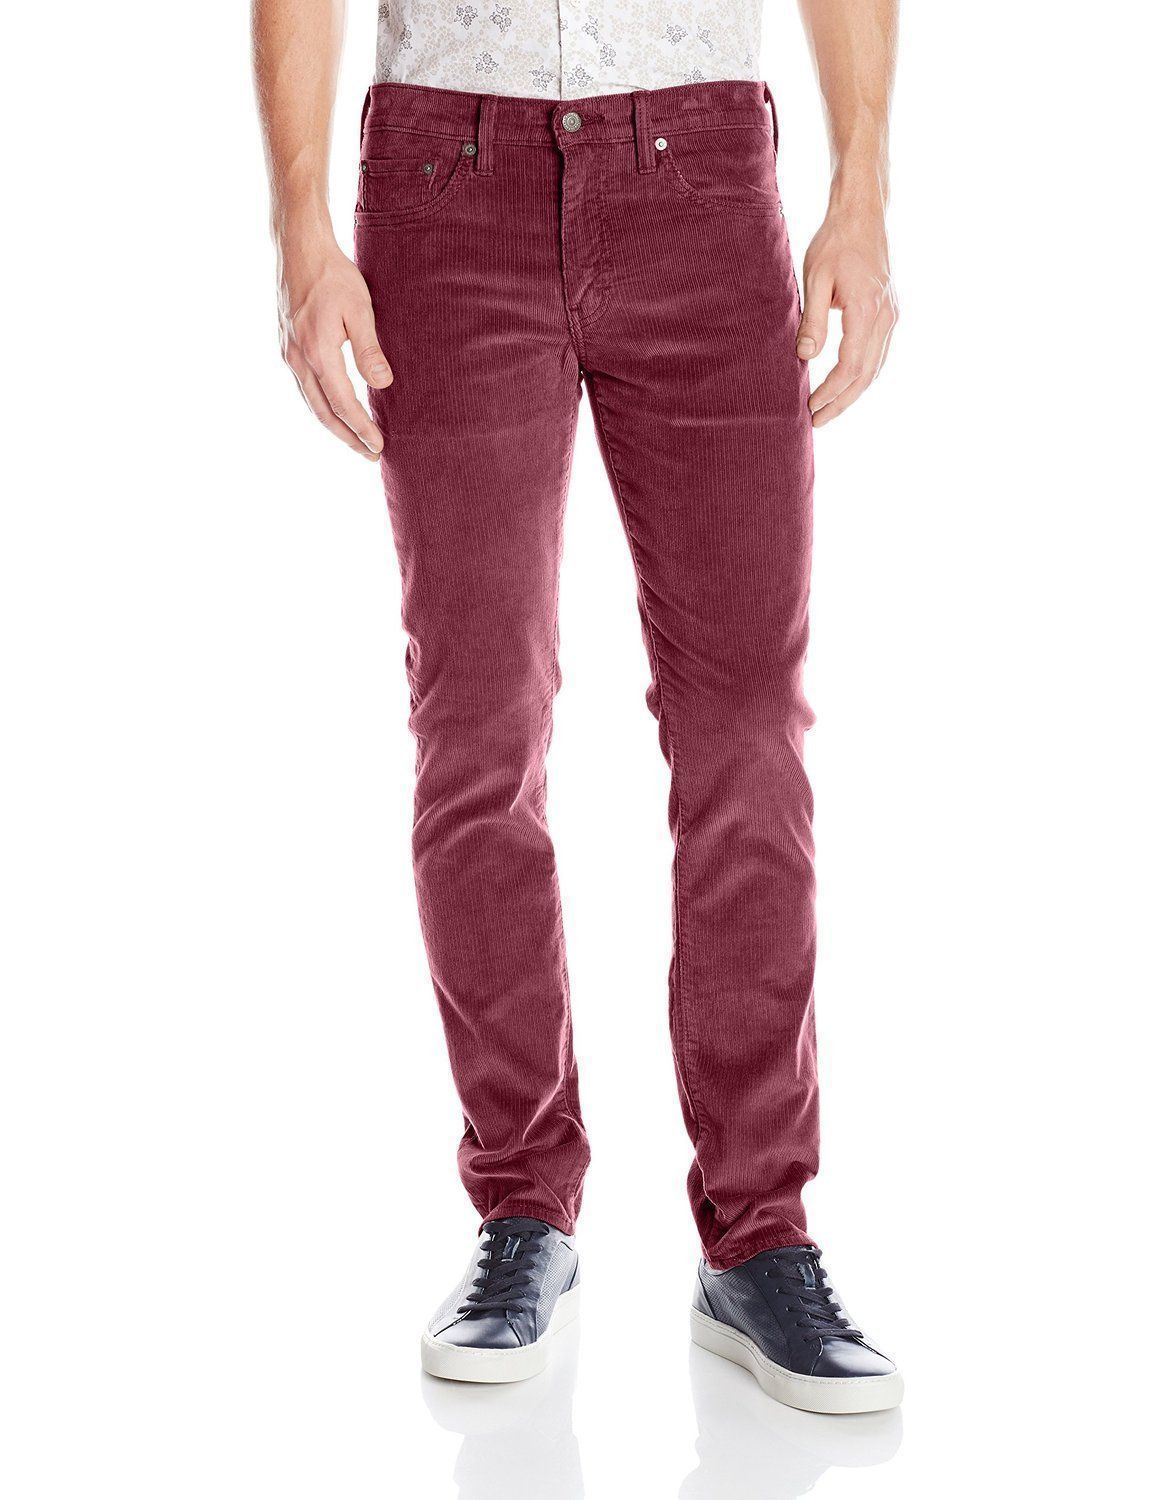 NEW LEVI'S STRAUSS 511 MEN'S ORIGINAL SLIM FIT PREMIUM CORDUROY JEANS 511-1874